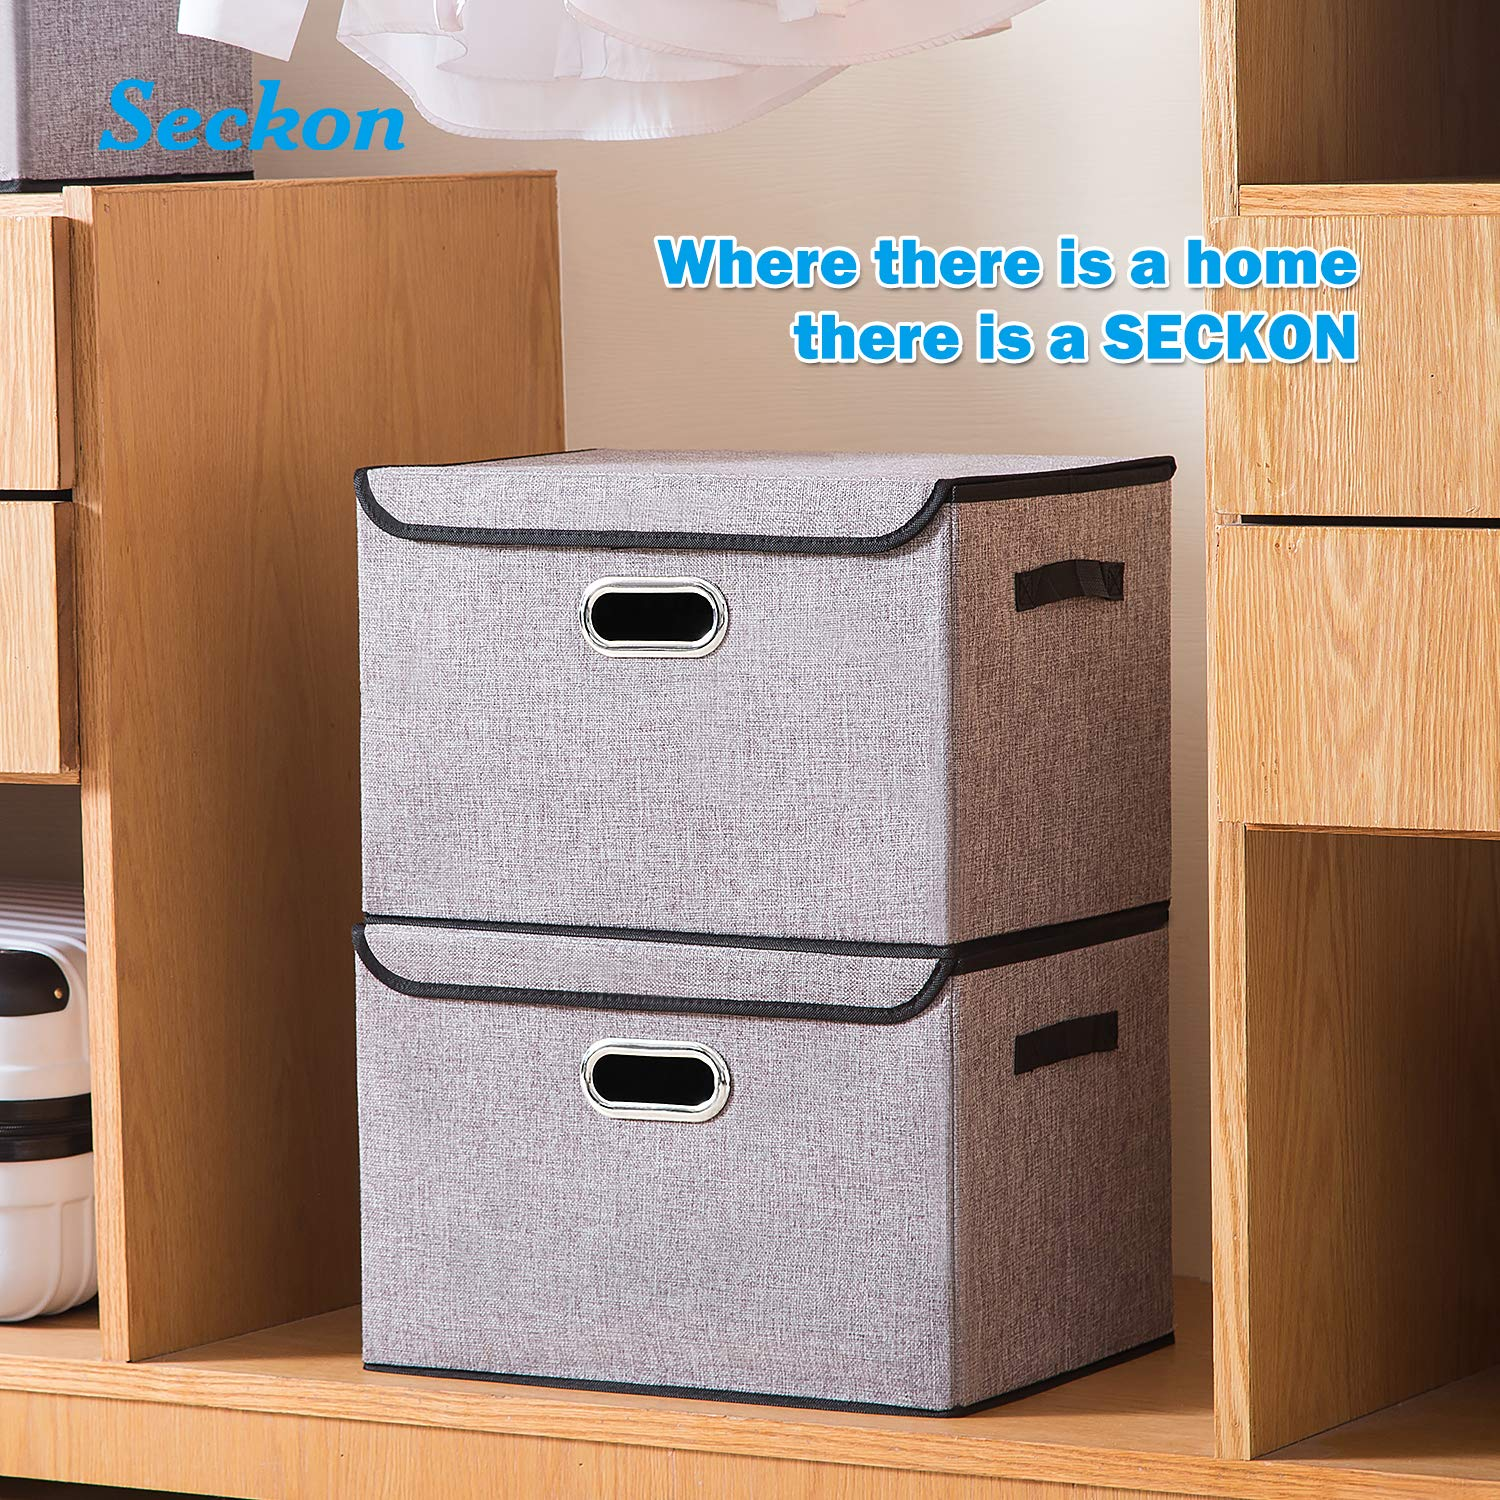 2Pack Seckon Collapsible Storage Box Container Bins with Lids Covers Toys Bedroom Closet Large Odorless Linen Fabric Storage Organizers Cube with Metal Handles for Office